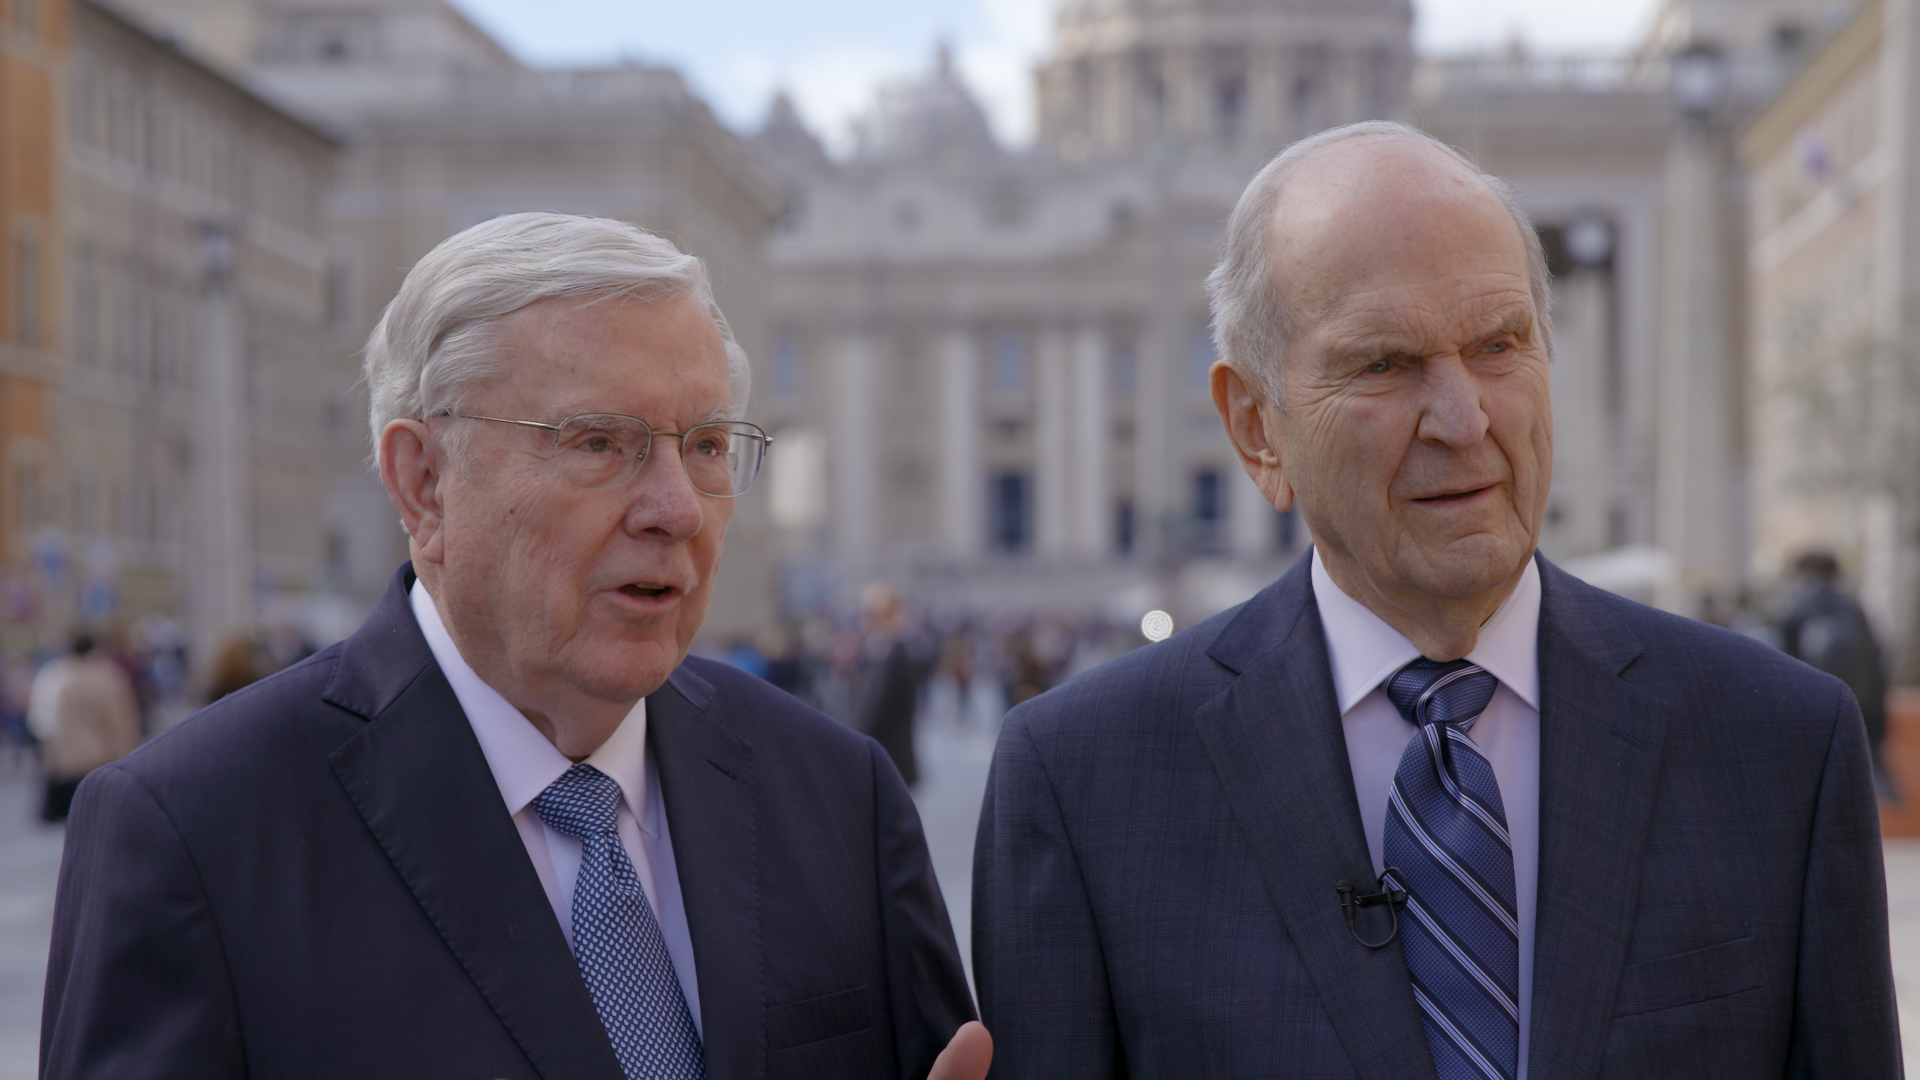 President Russell M. Nelson, and Elder M. Russell Ballard did an interview outside the Vatican after meeting with Pope Francis.